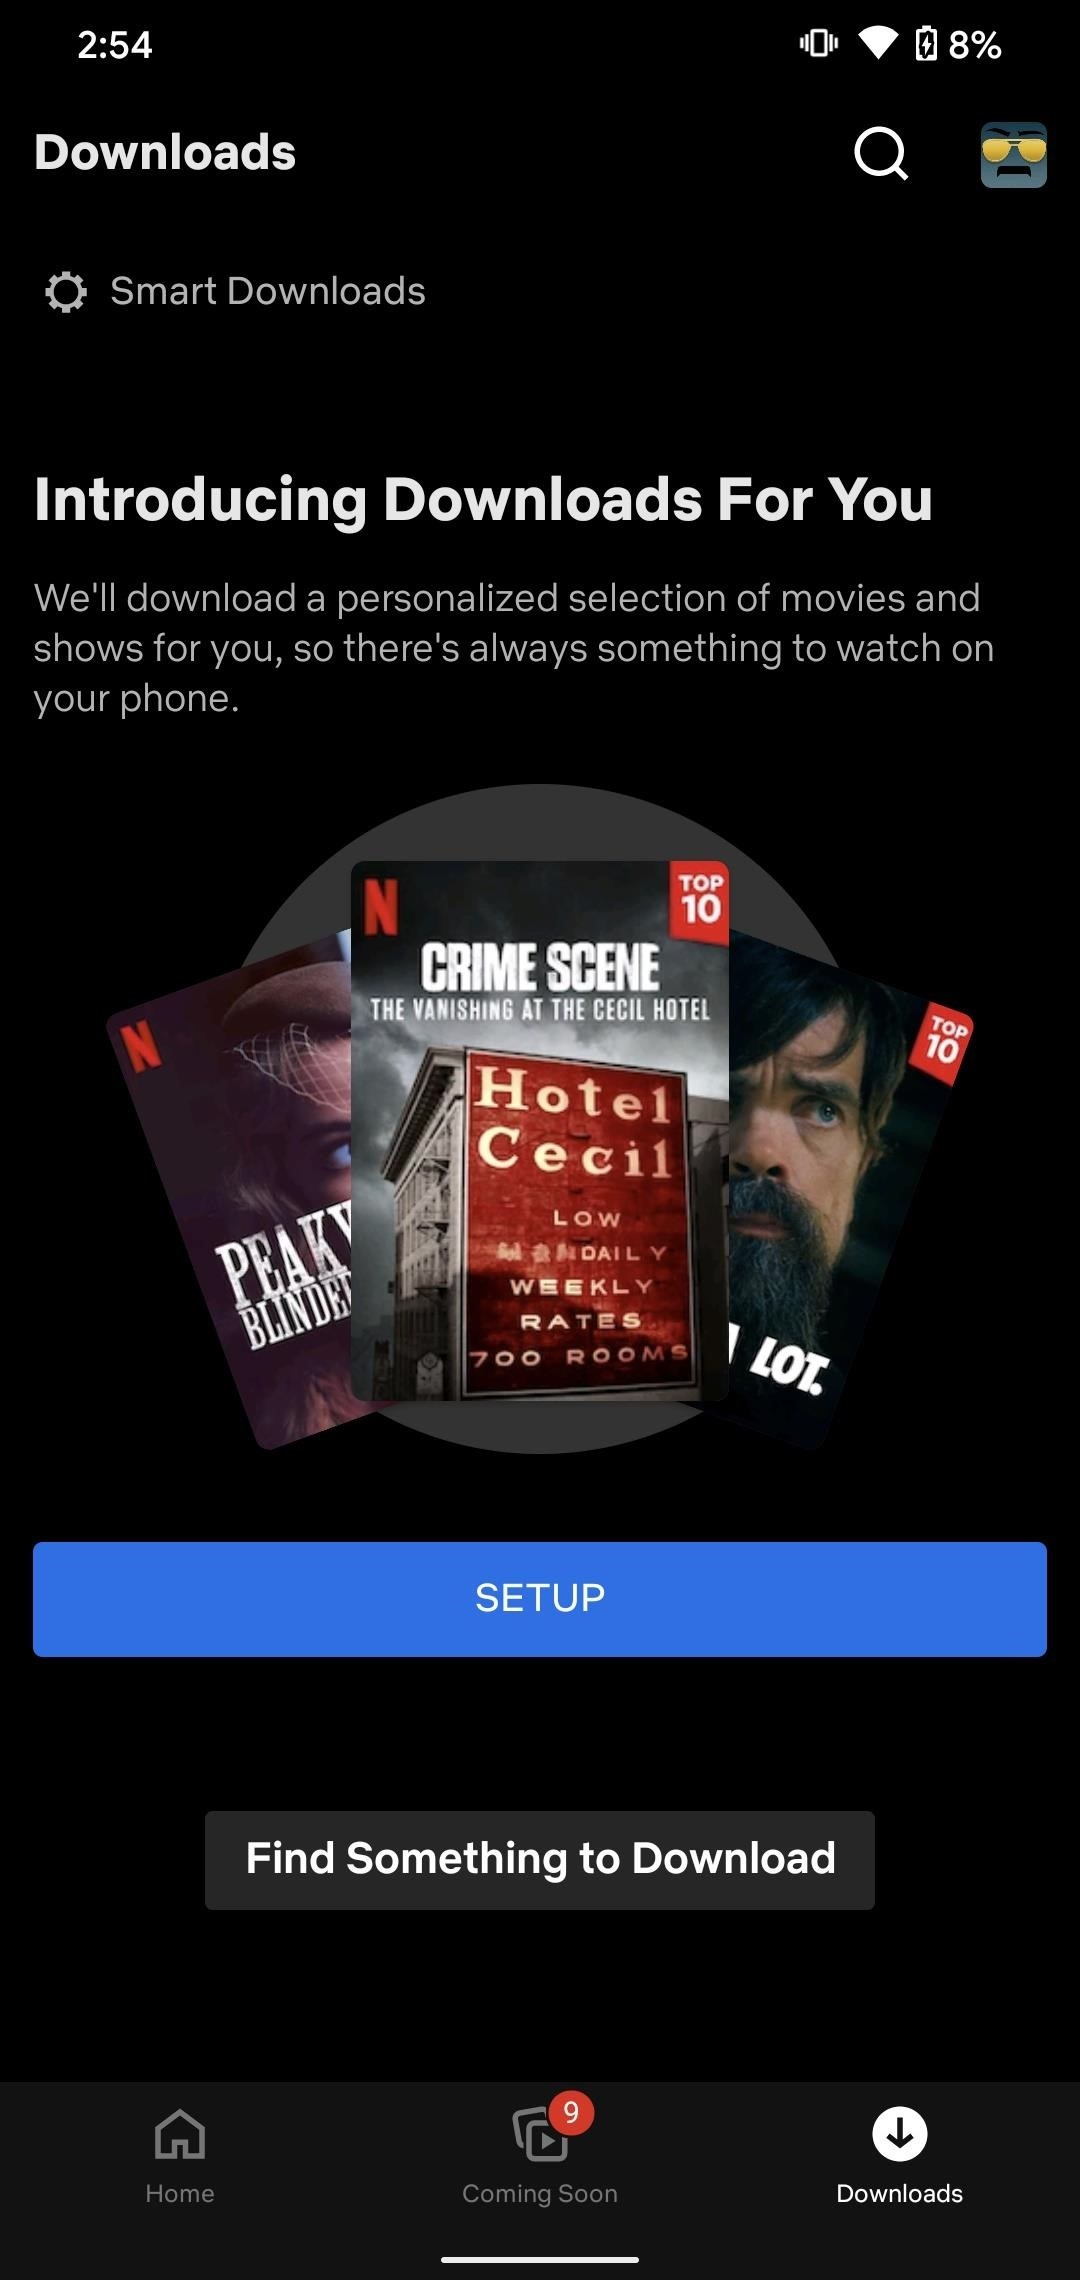 How to make Netflix automatically download shows and movies to your phone based on your interests